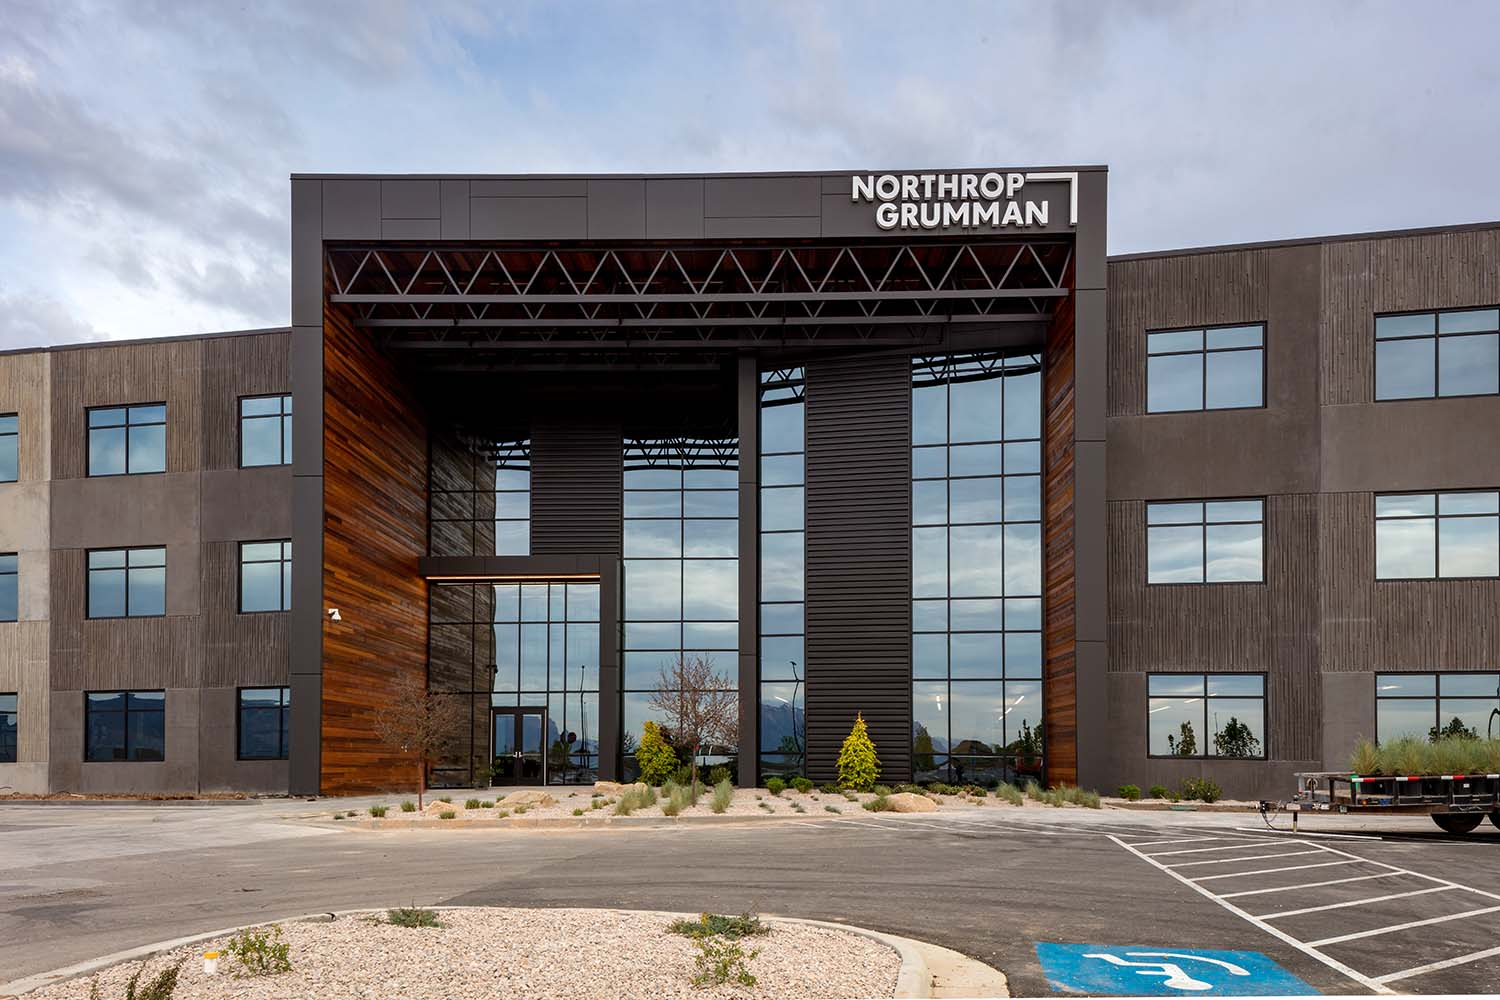 R&O Nears Completetion of the Northrop Grumman Roy Innovation Center